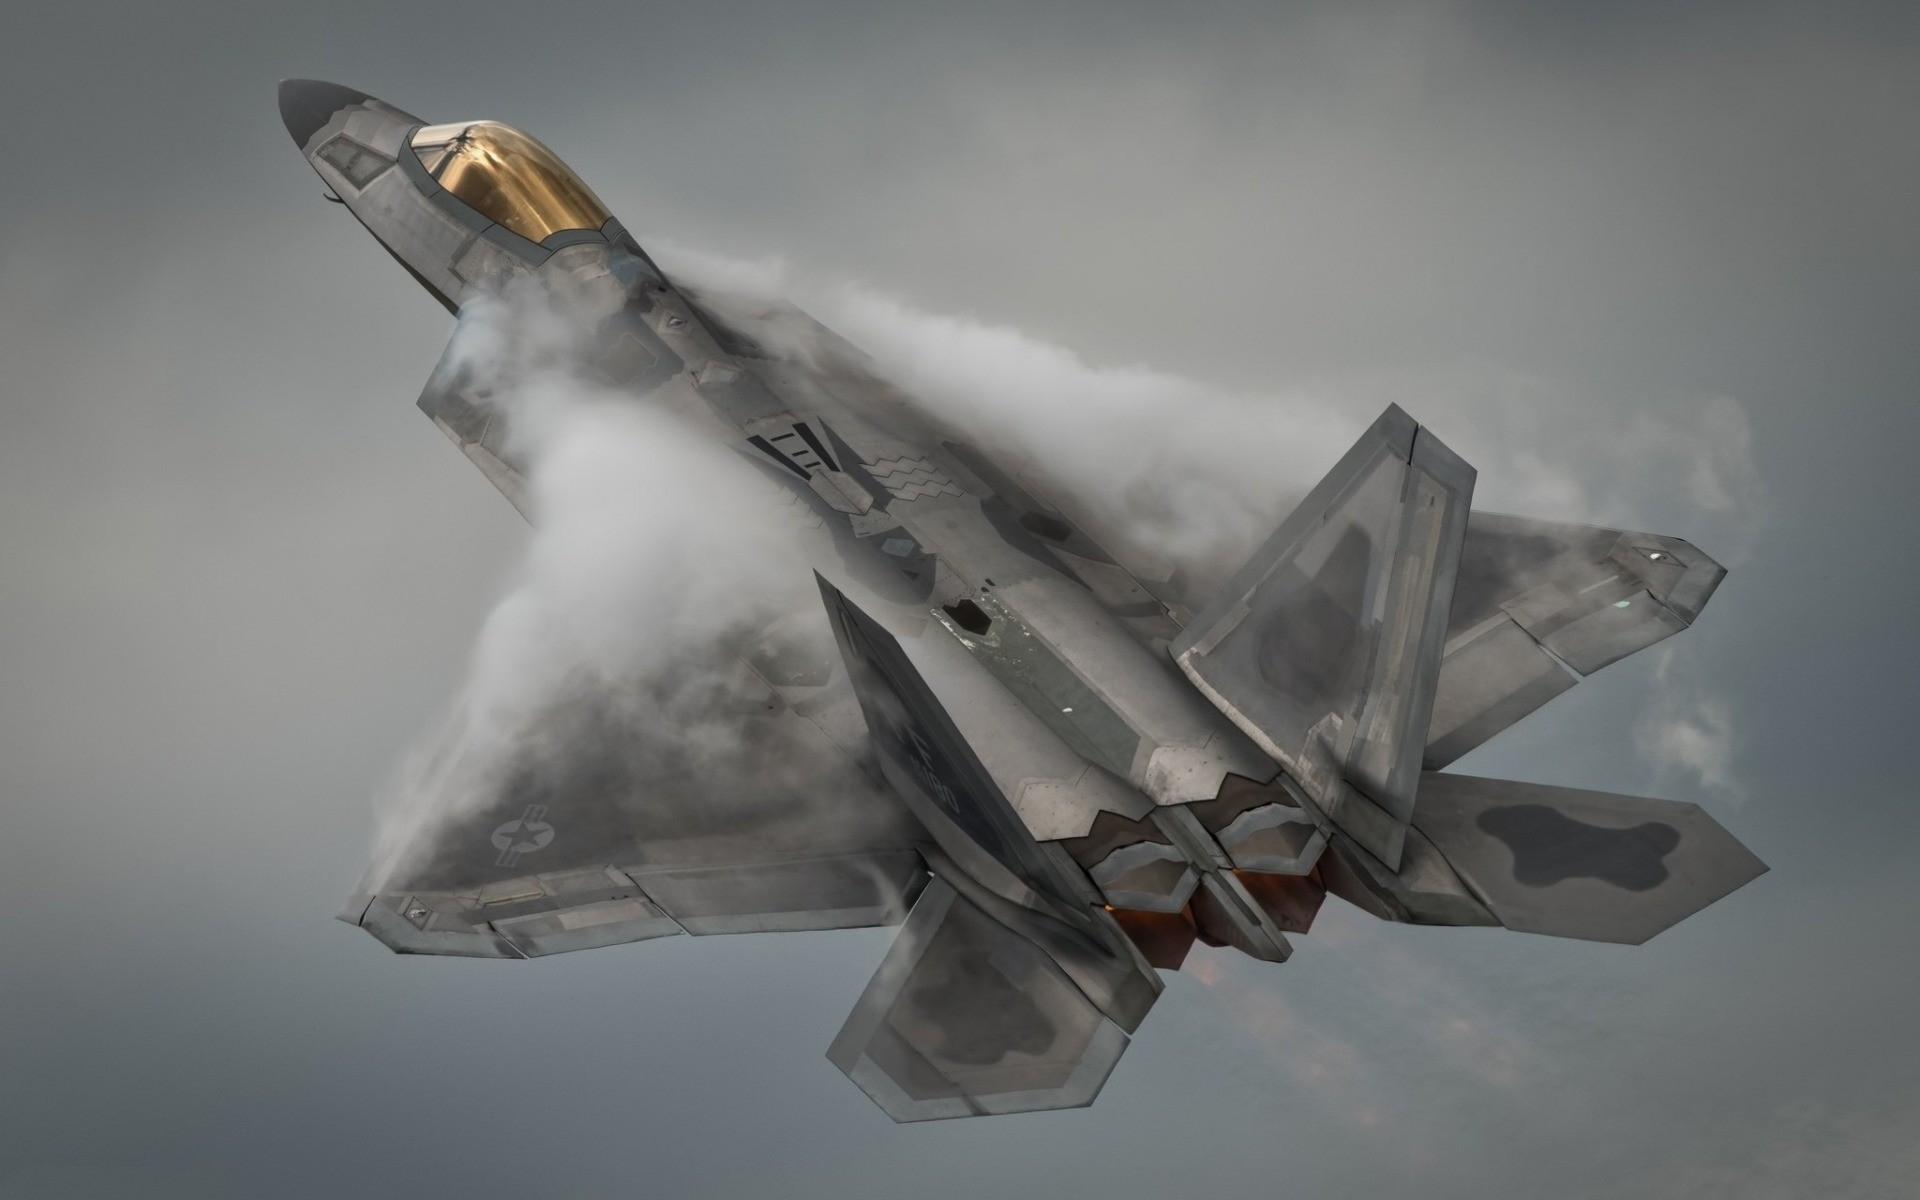 1920x1200 Lockheed Martin F-22A Raptor, F-22, US Air Force, fifth